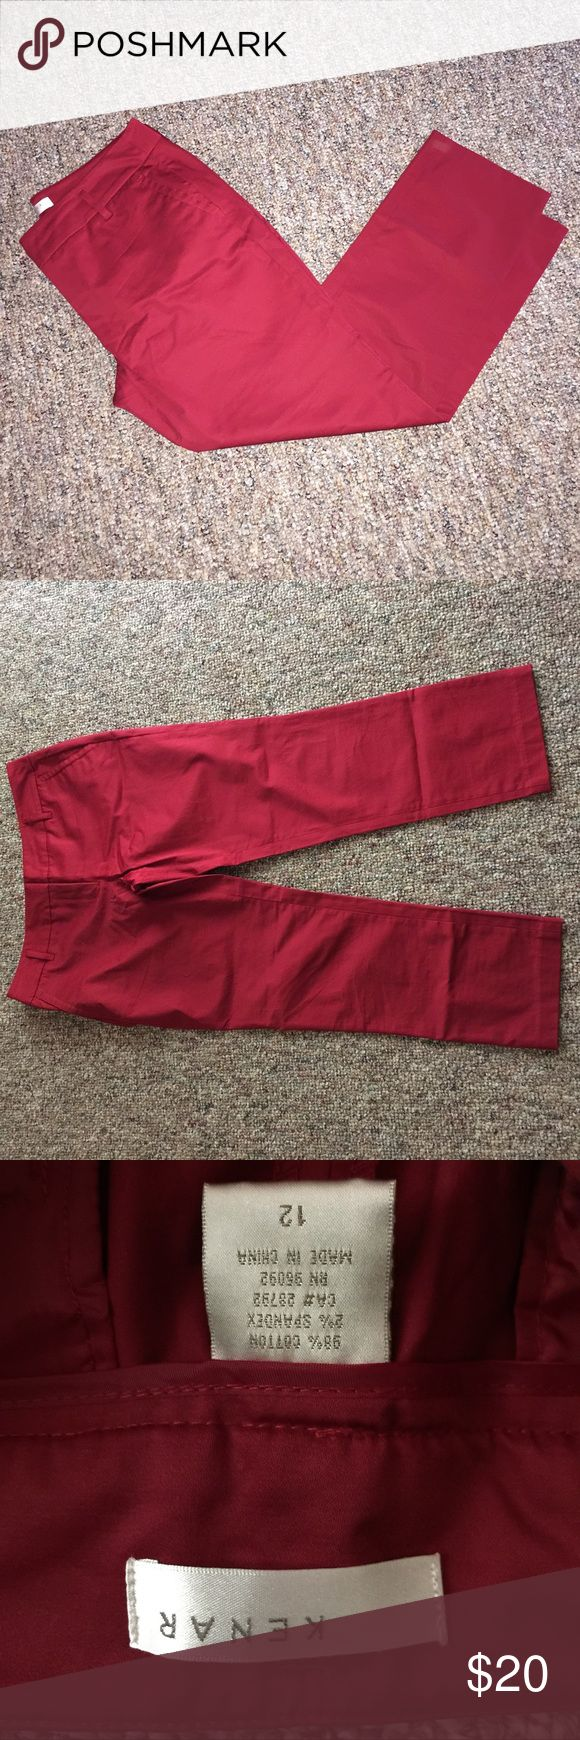 Red Shiney Skinny Pants Beautiful red skinny cotton pants taper in towards the ankles. They are ankle length. Kenar Pants Ankle & Cropped